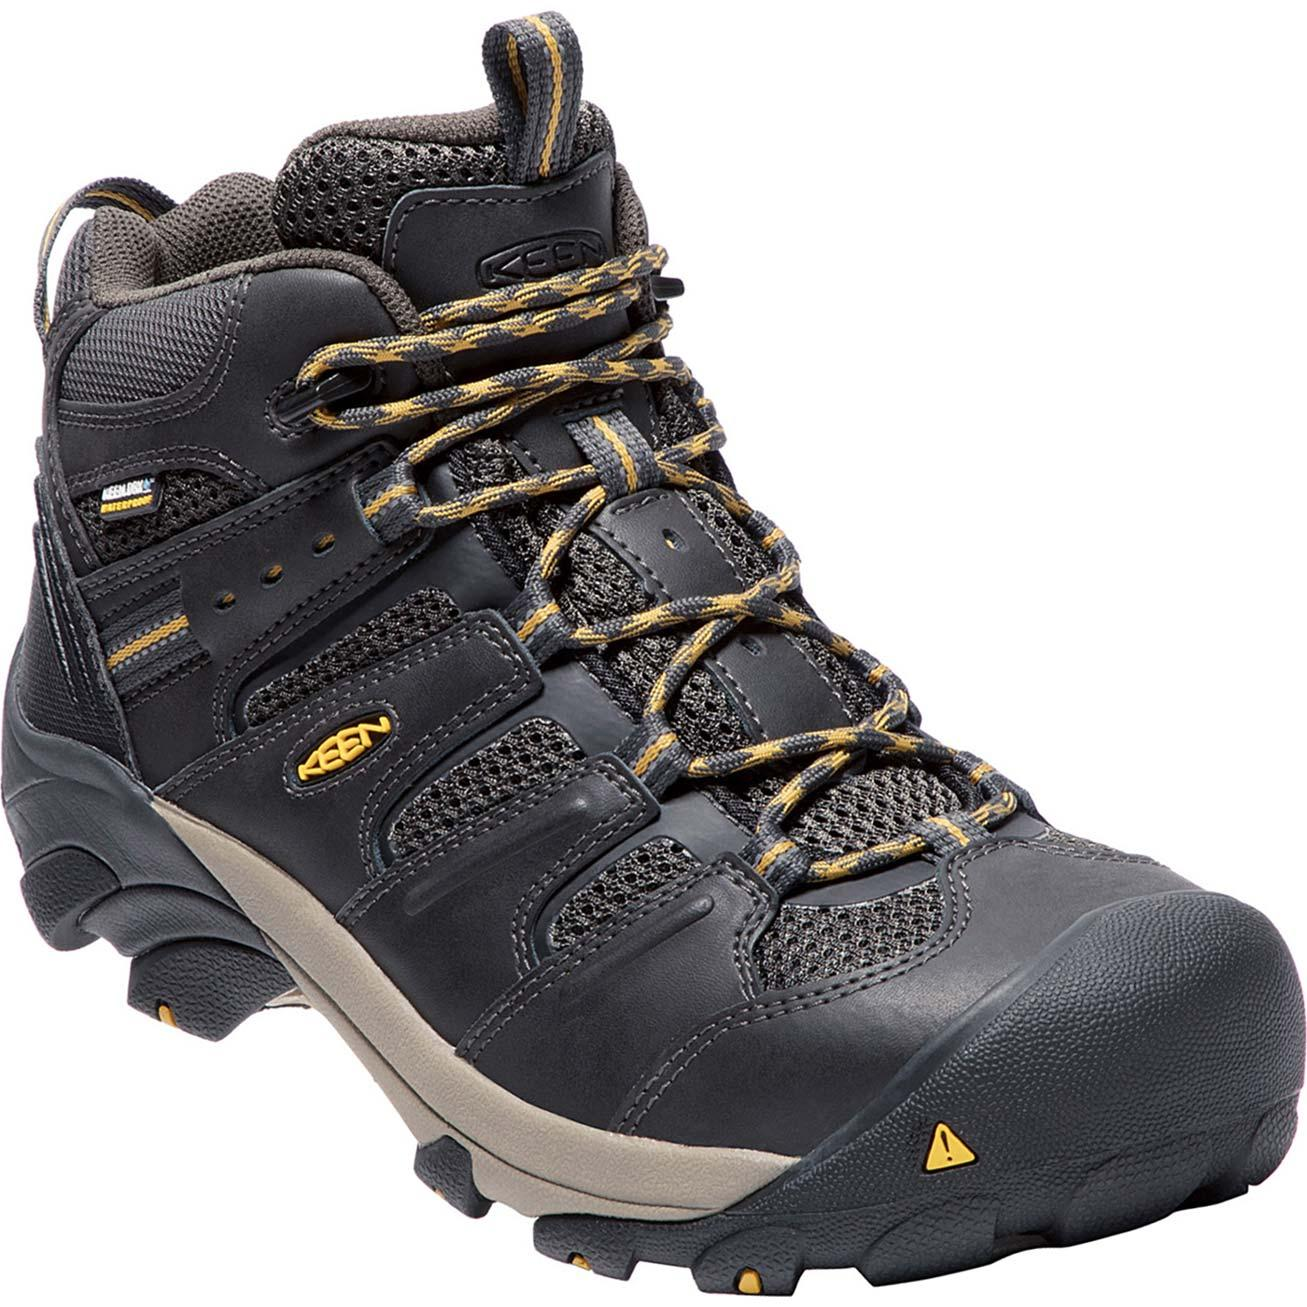 Keen Shoes Size 5